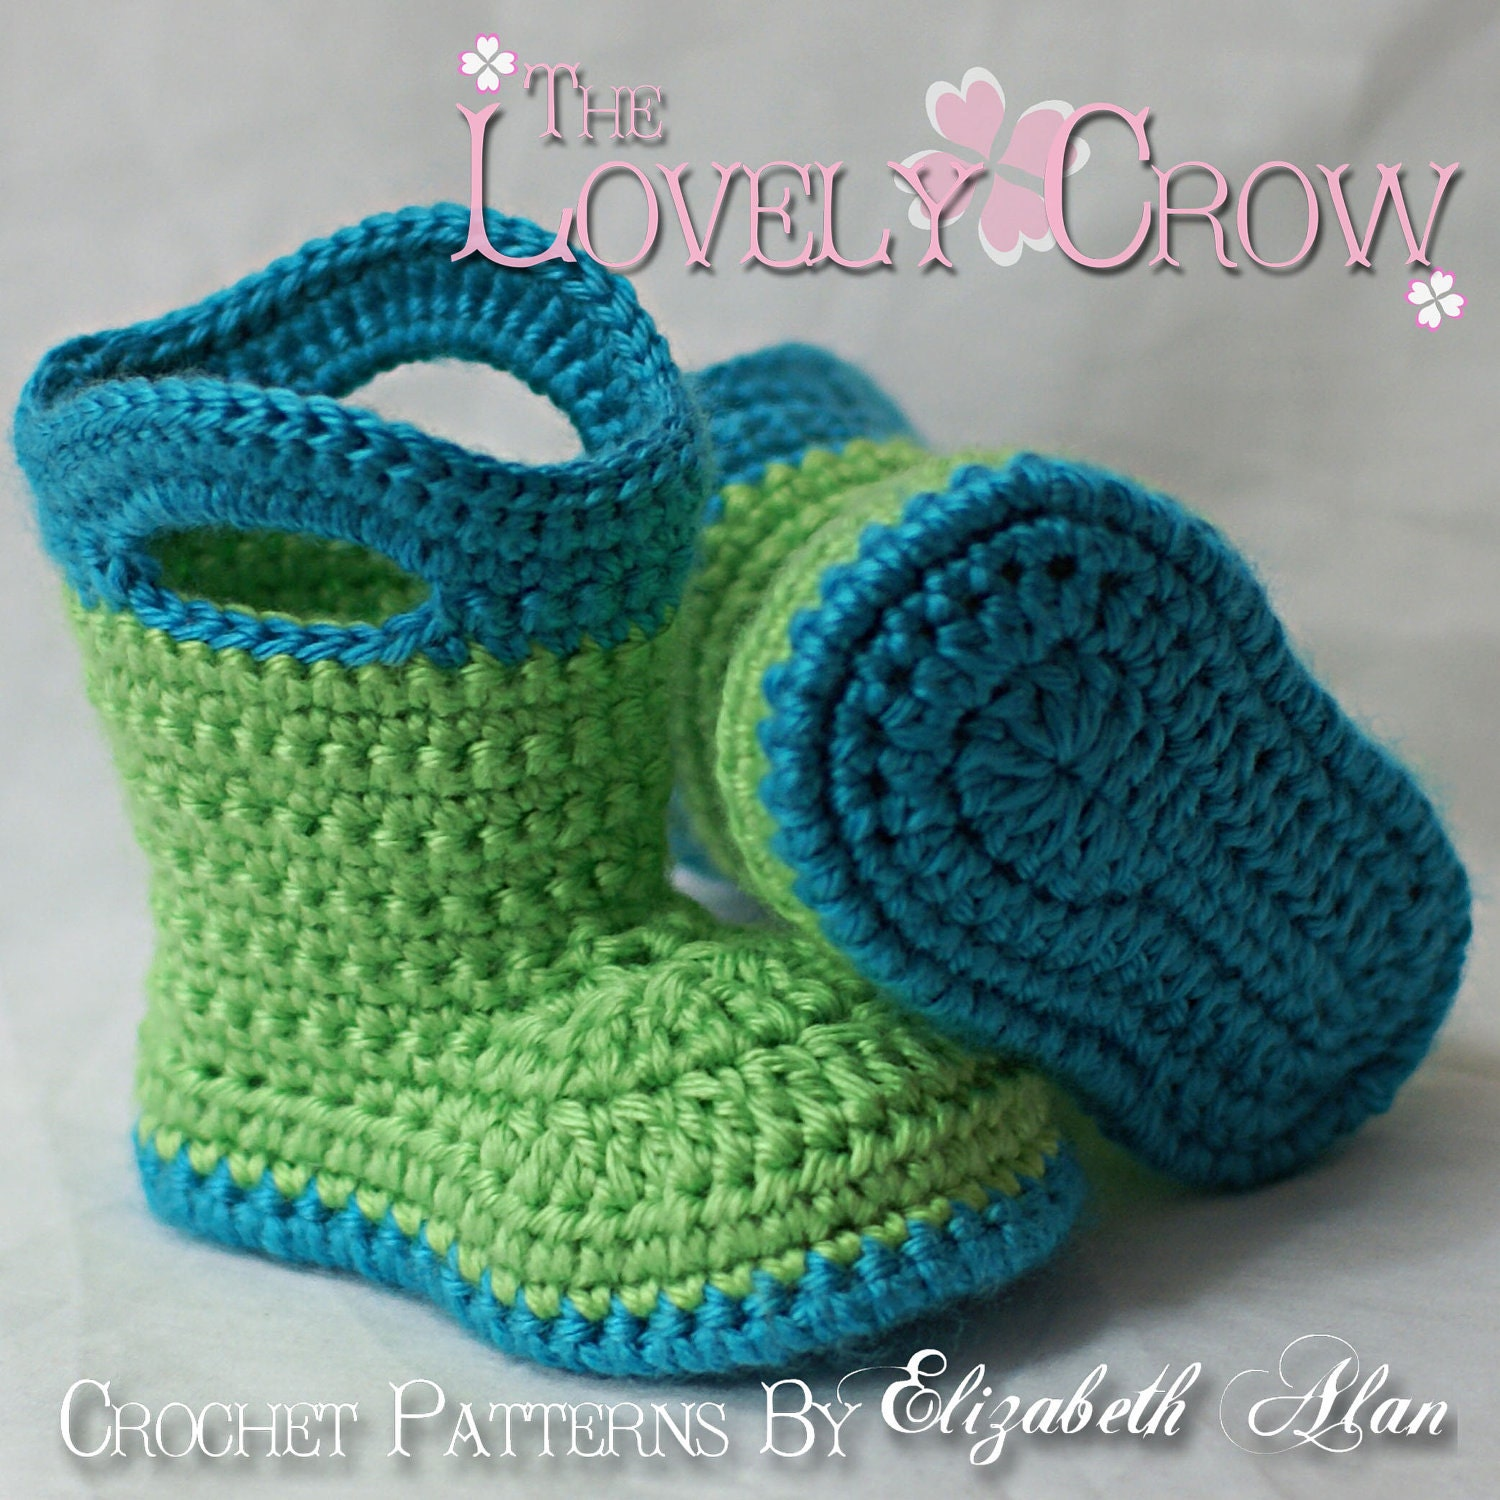 Beginner Crochet Baby Booties Pattern Free : Free Crochet Pattern Baby Booties Images & Pictures - Becuo